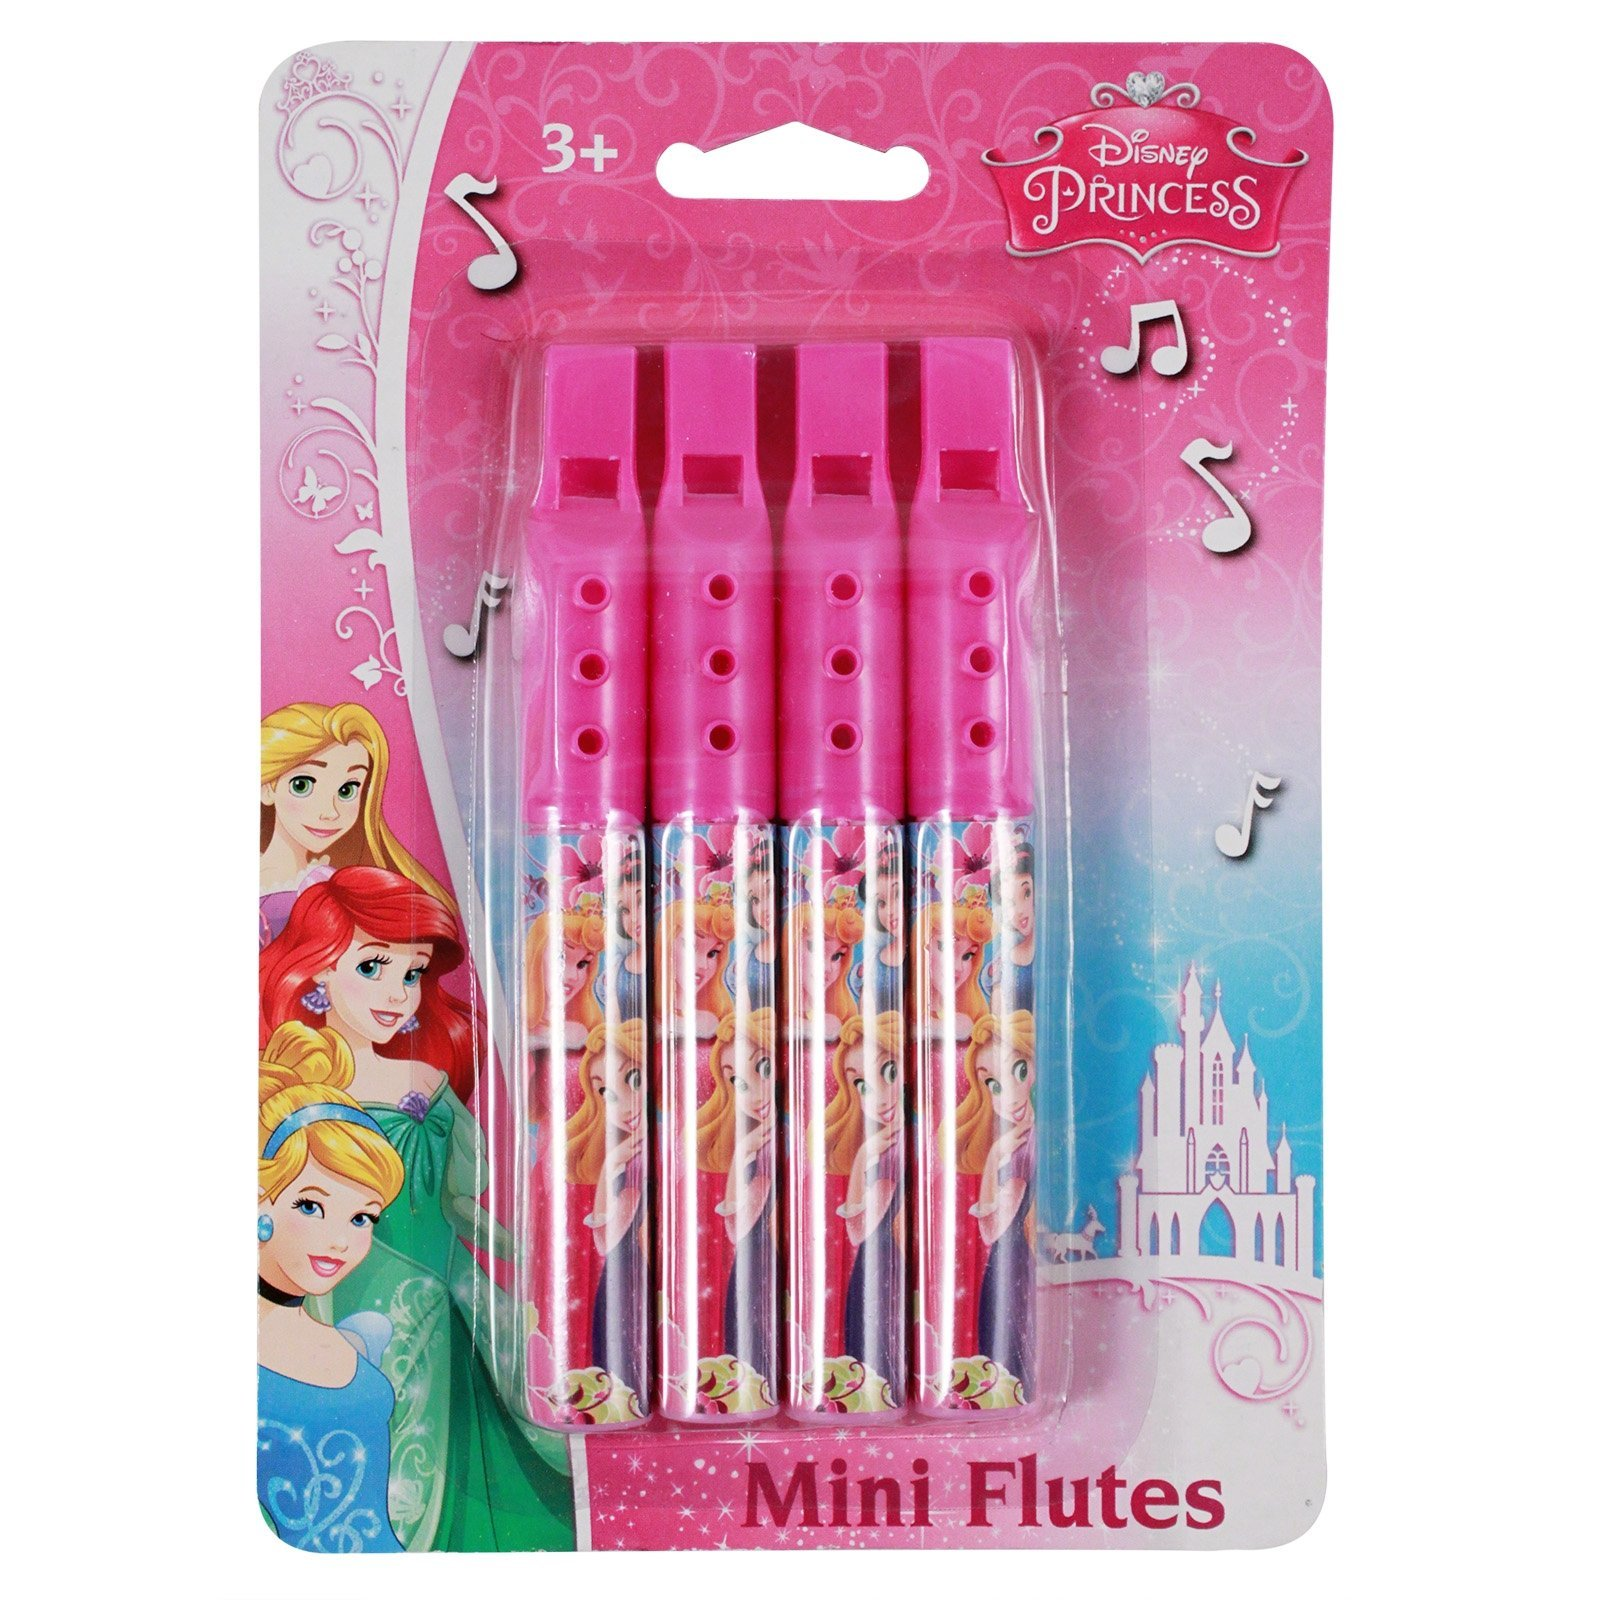 Disney Mini Flutes Kids Music Instrument Toy (8 Flutes)